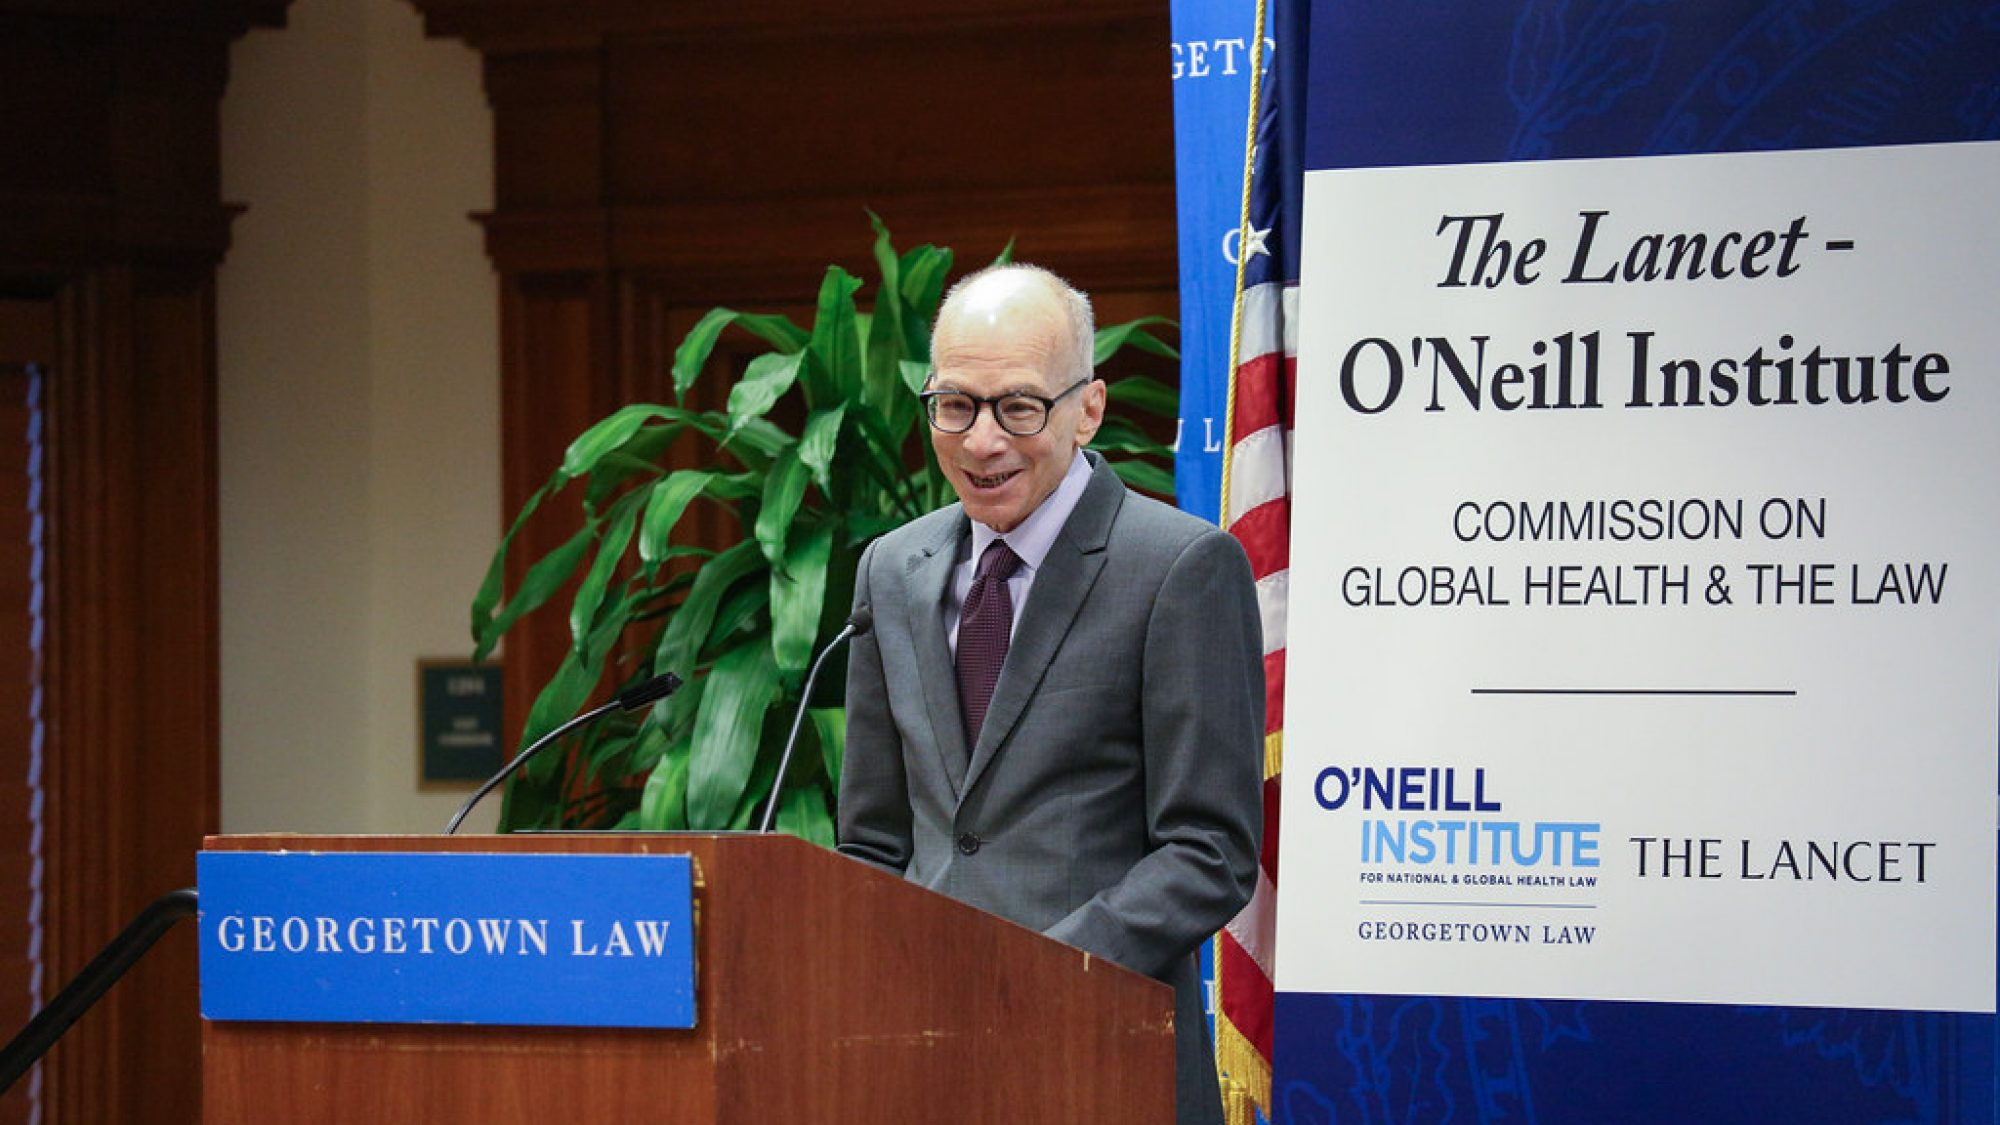 Professor Gostin Speaking at a Georgetown Law Event